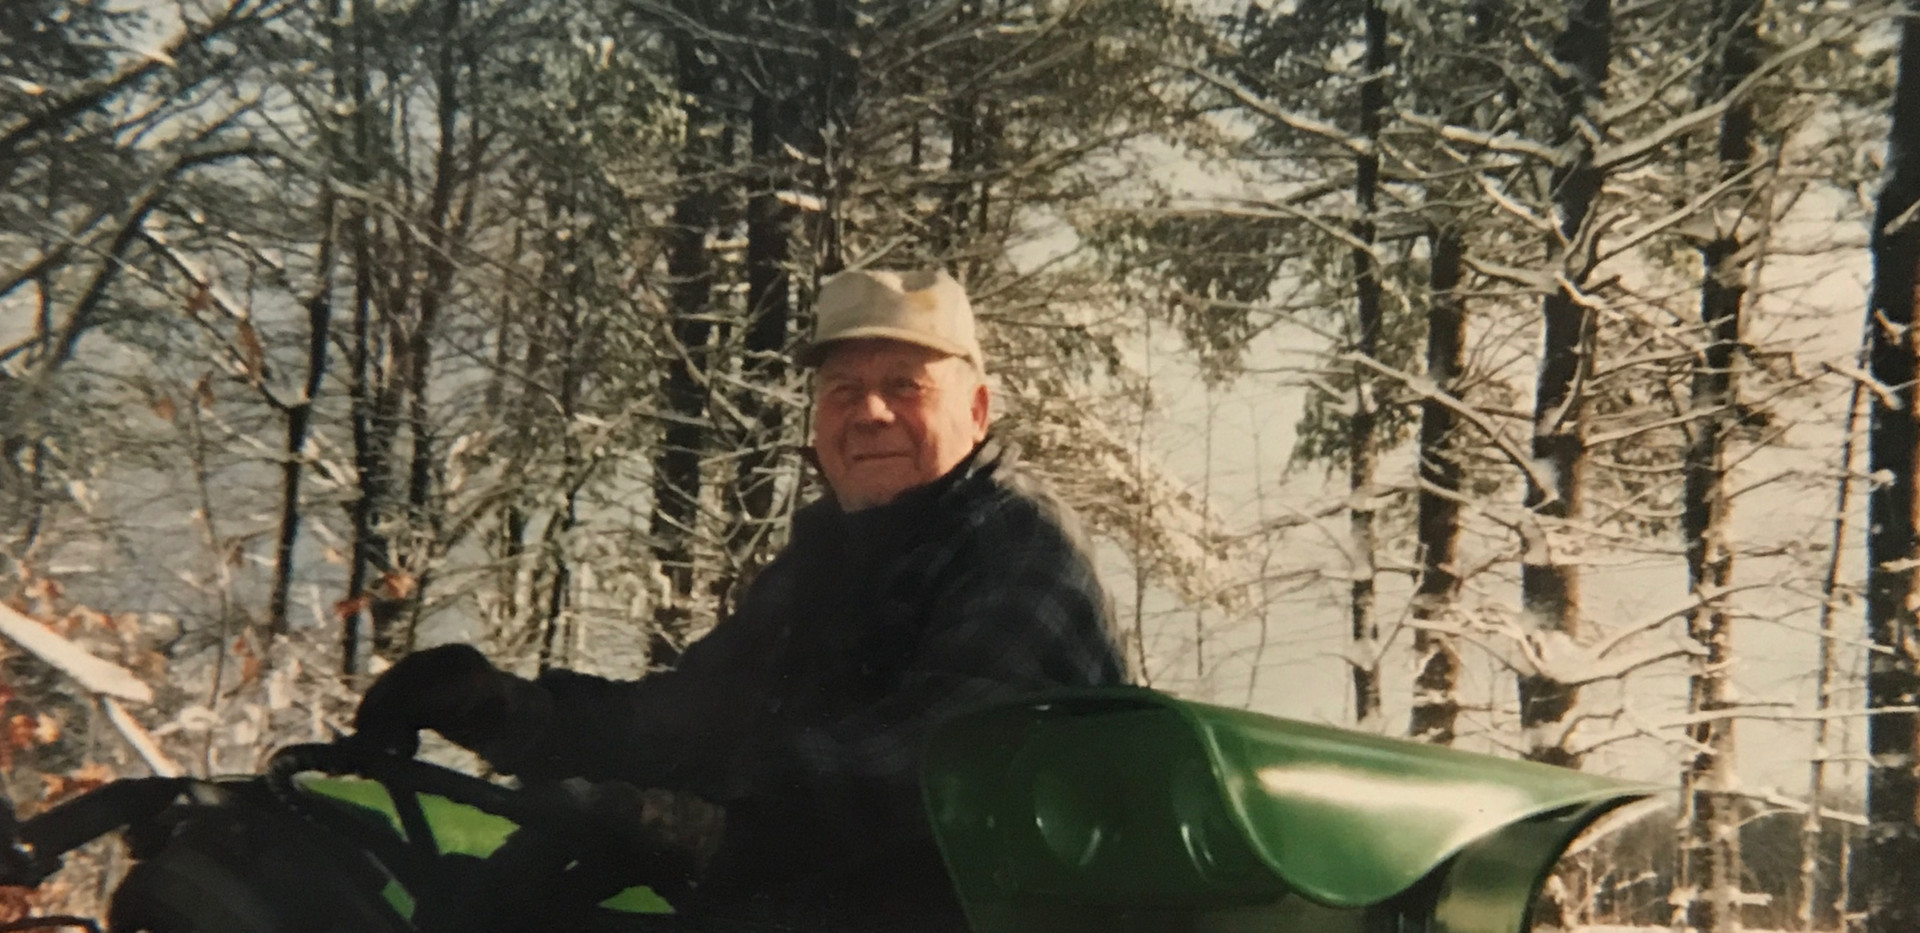 Farmer Othro (Tom) Sawyer atop his John Deere tractor